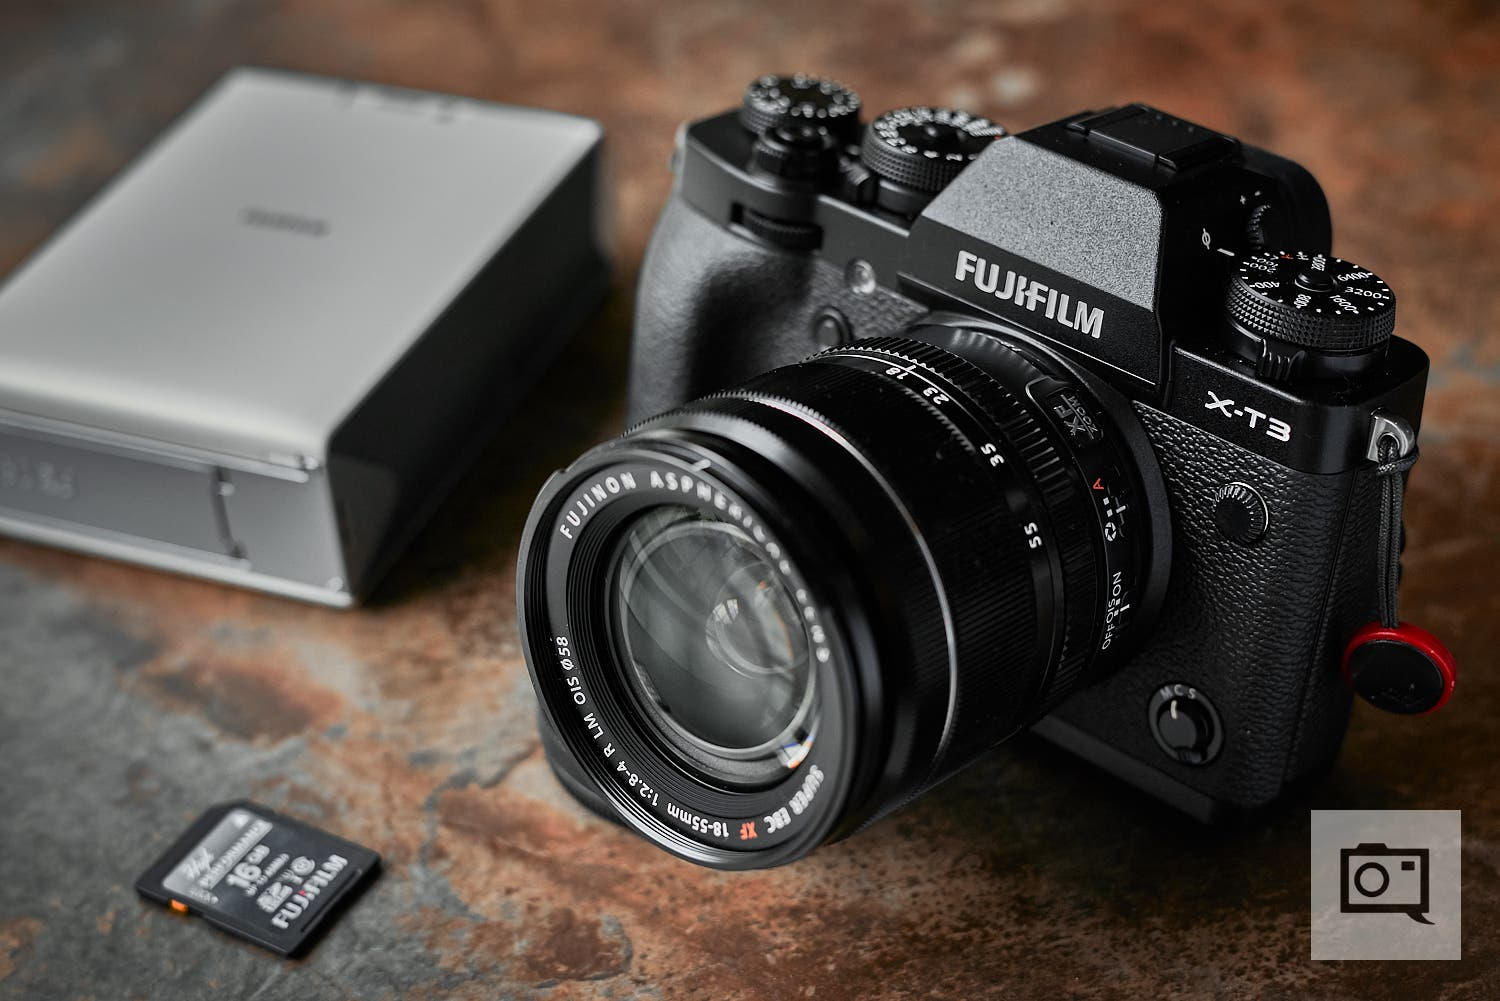 Fujifilm X-T3 Firmware 3.00 Brings Improved Eye Detection to The Camera